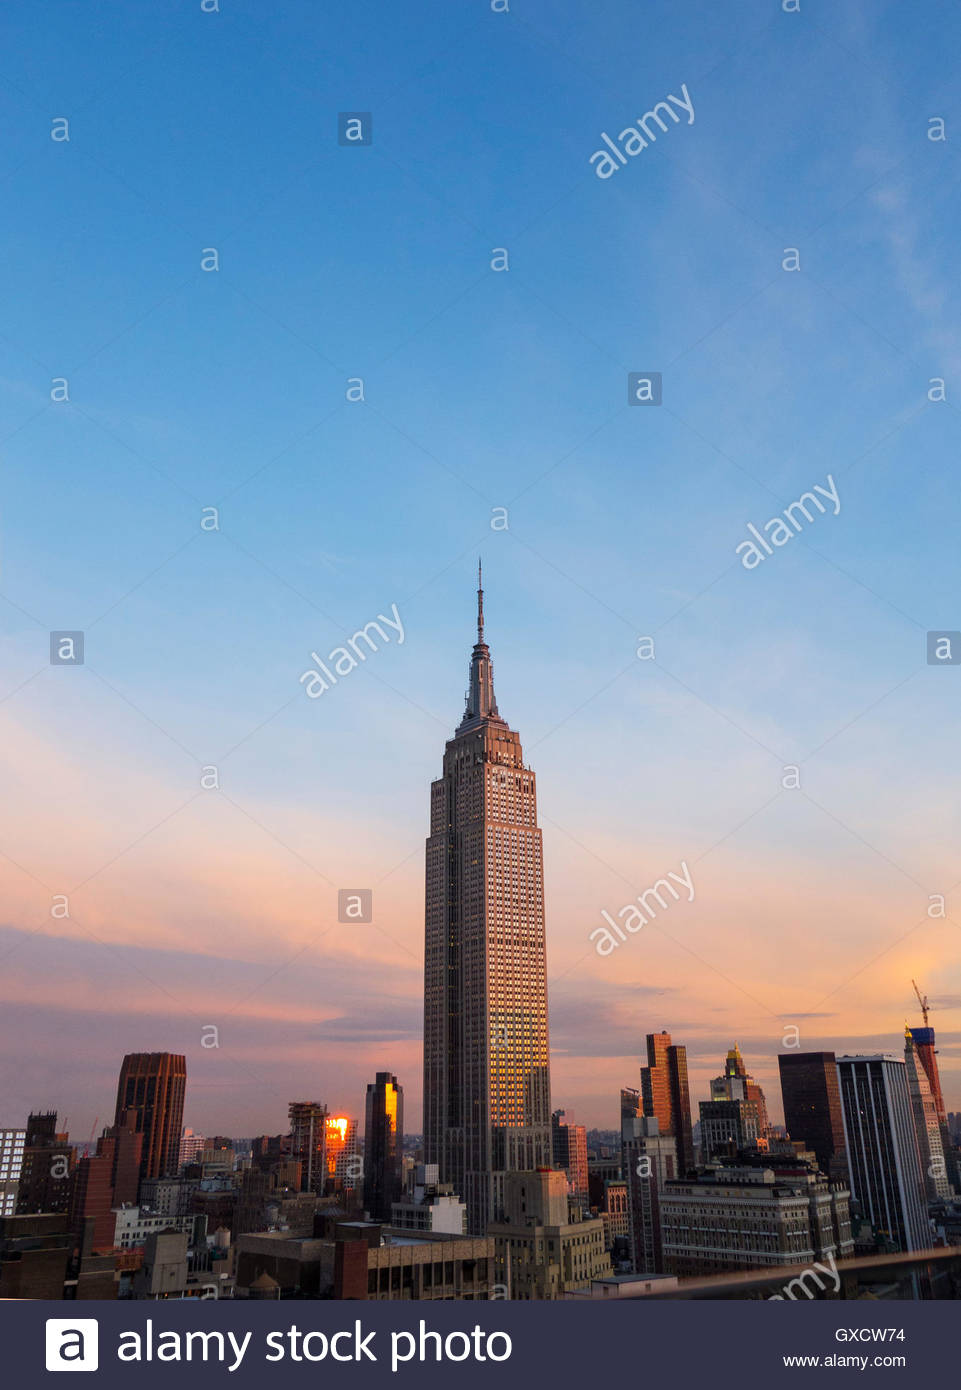 Empire state building on skyline at sunset, New York, USA Stock Photo